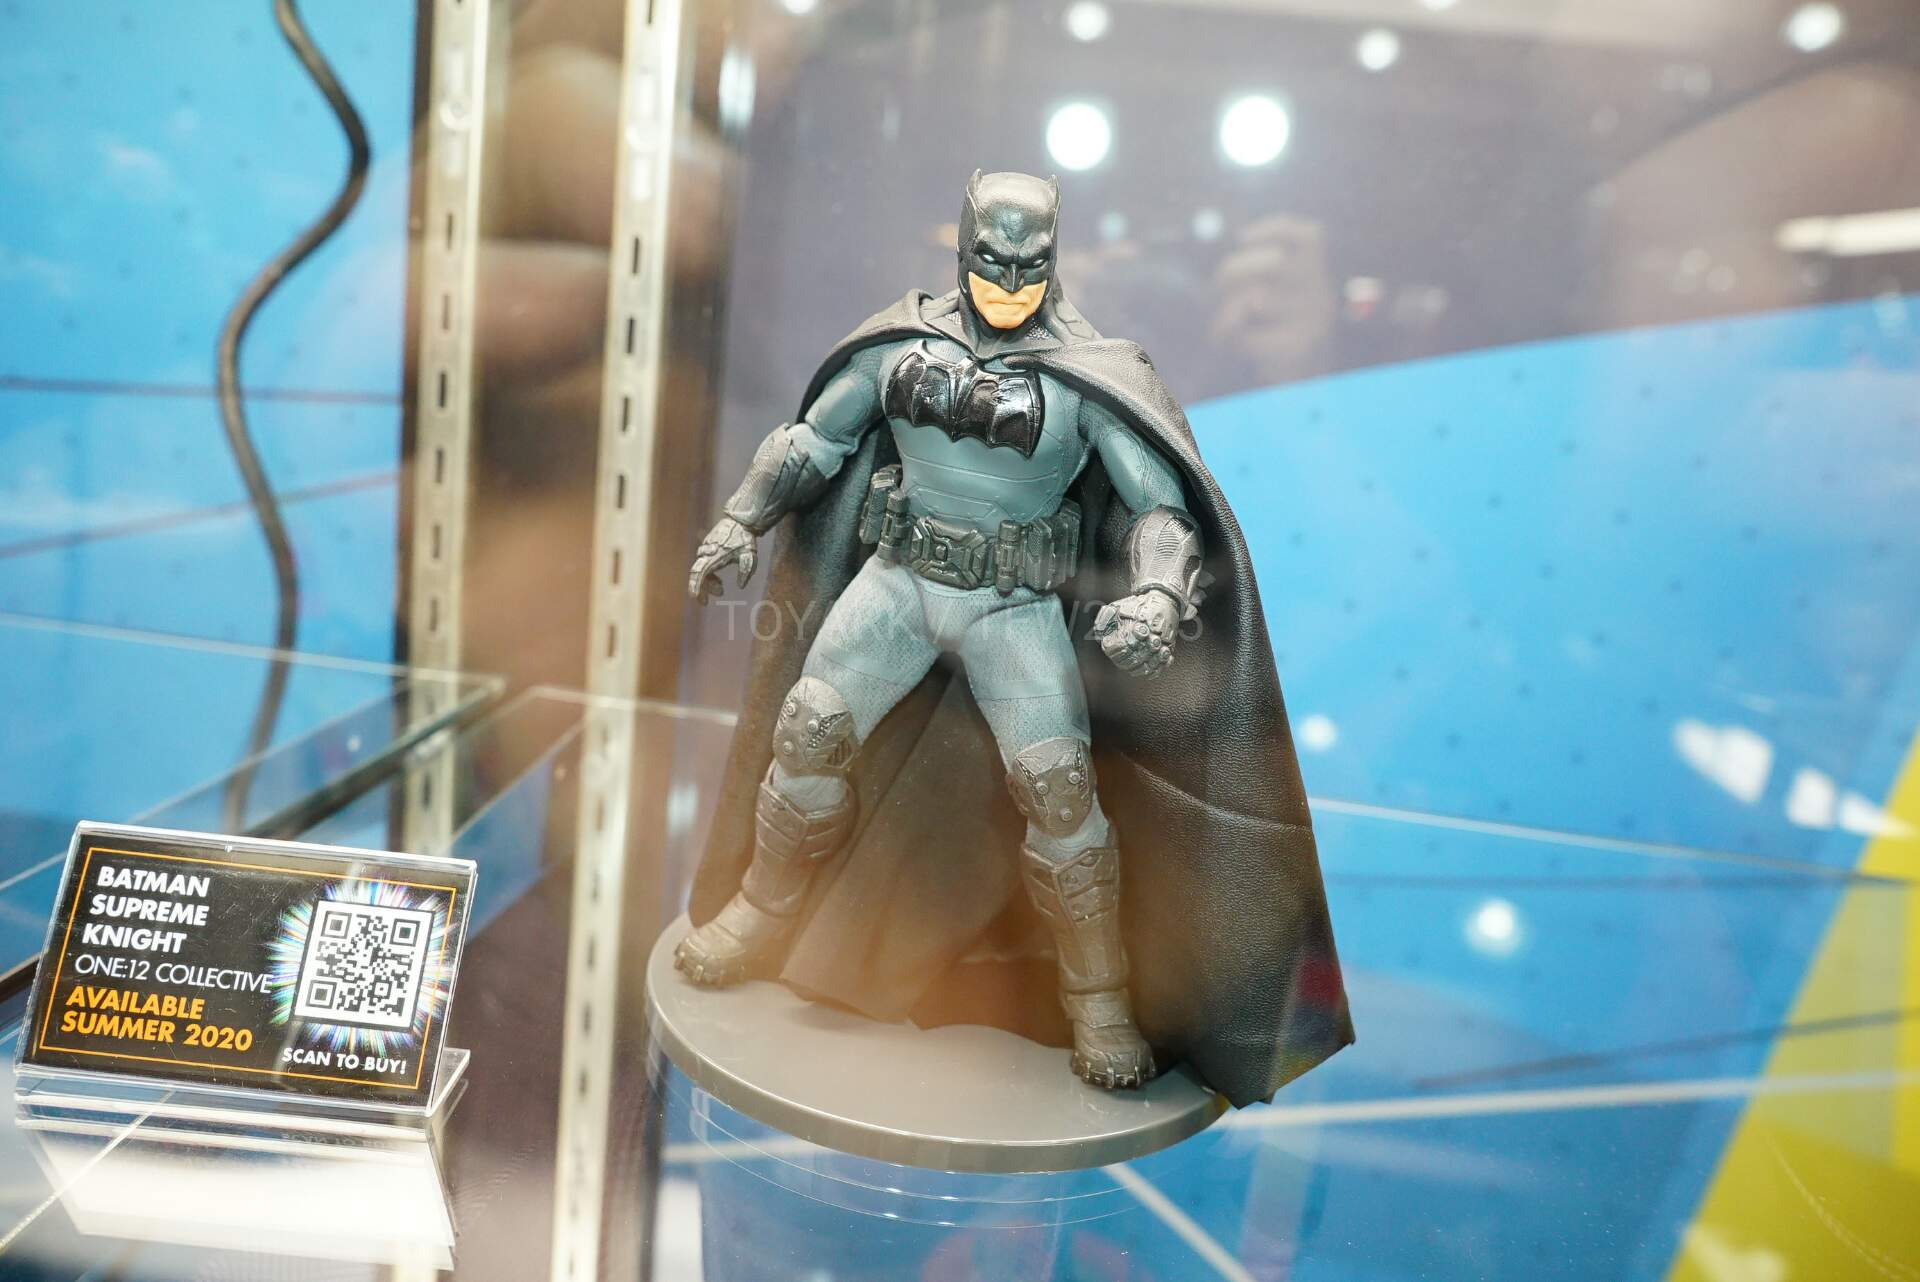 Toy-Fair-2020-Mezco-One12-019.jpg